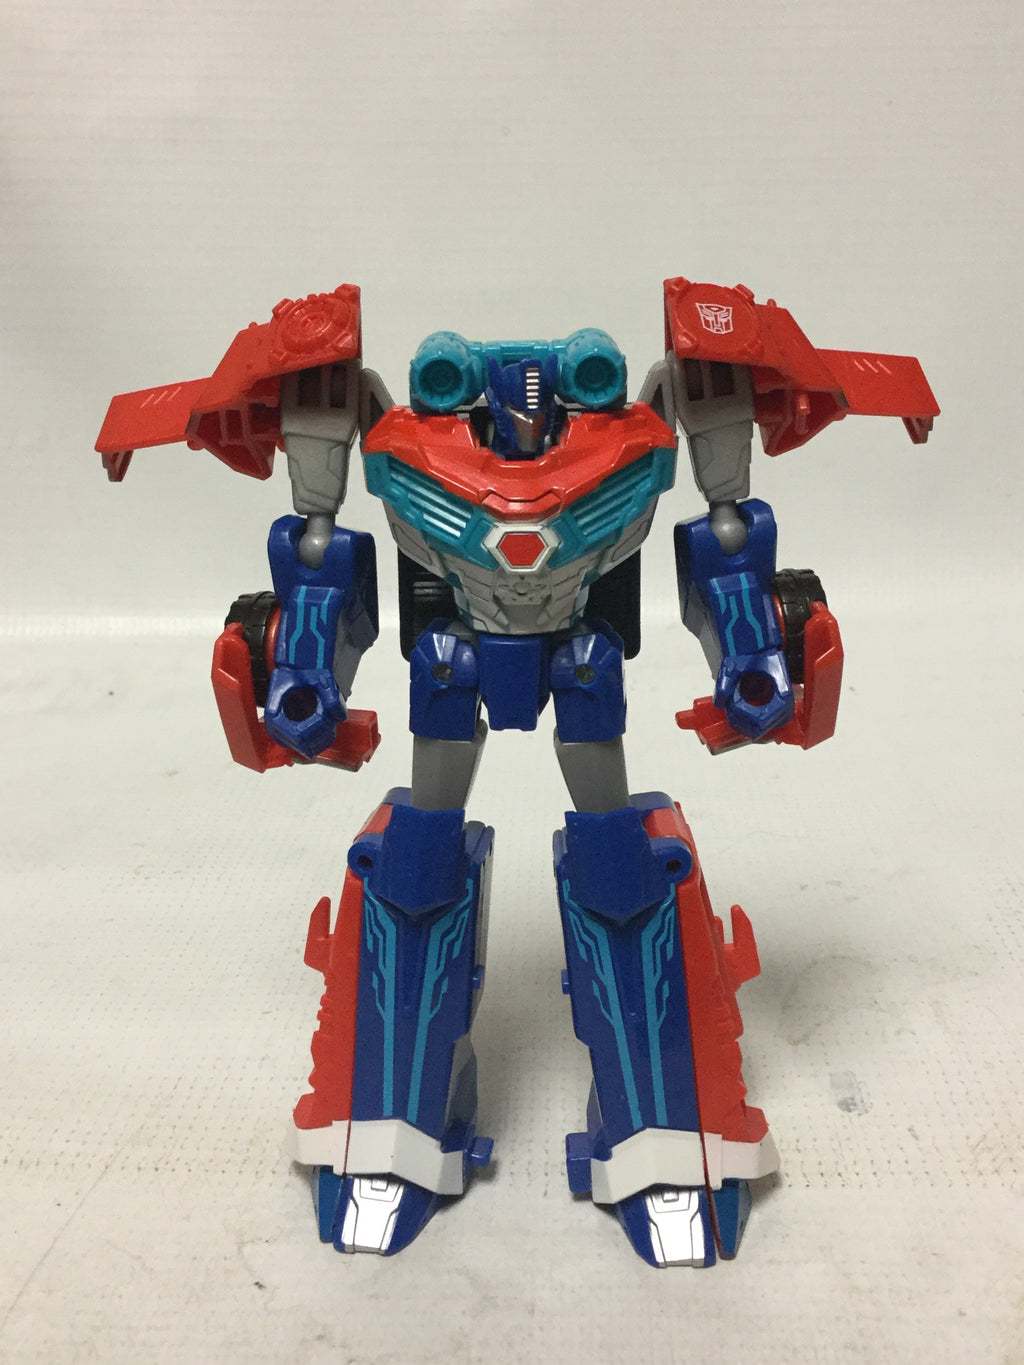 Hasbro Transformers Robots In Disguise Warrior Class Custom Power Surge Optimus Prime